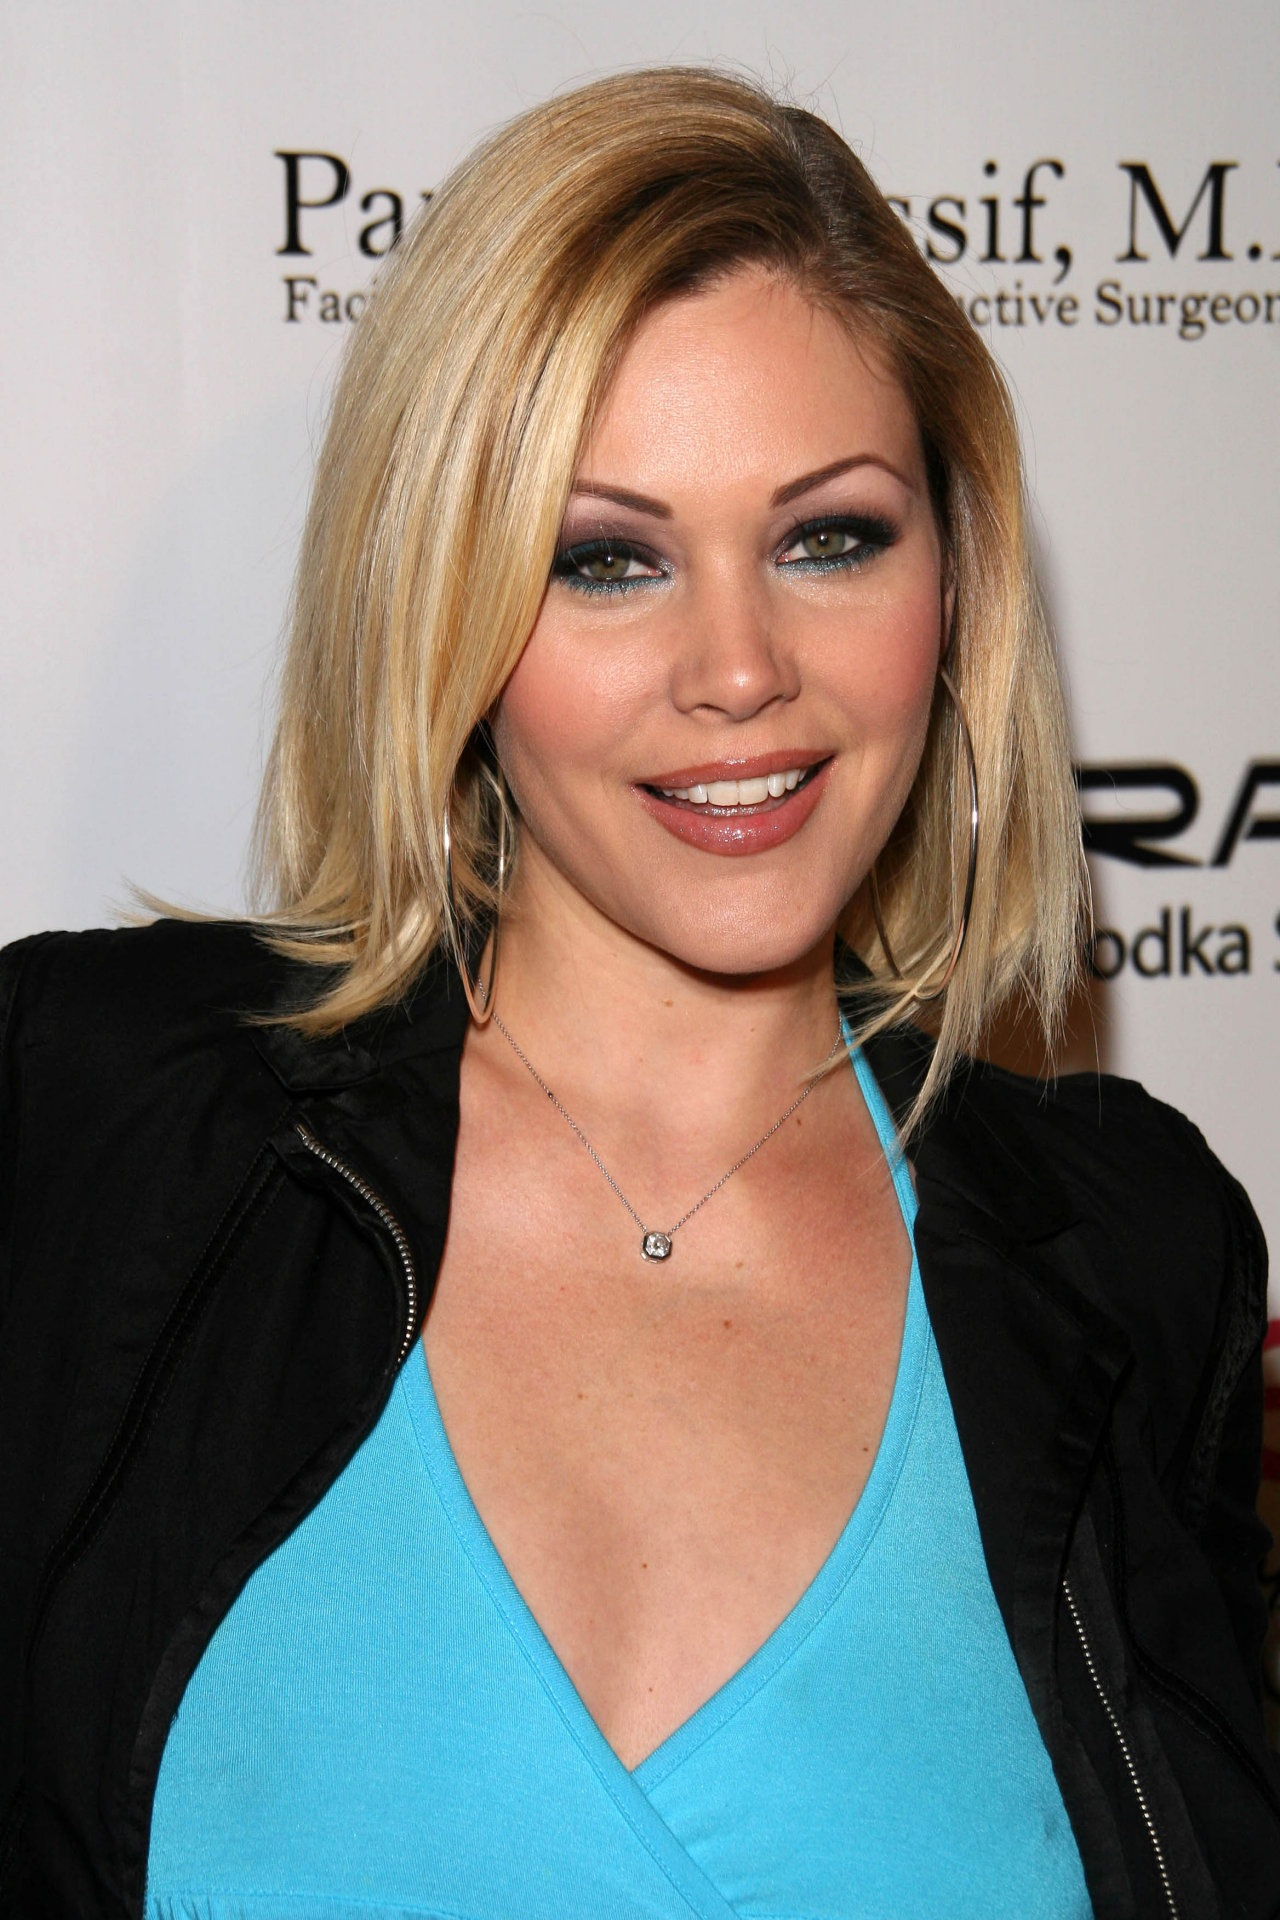 shanna moakler hotshanna moakler height, shanna moakler insta, shanna moakler photos, shanna moakler instagram, shanna moakler and travis barker, shanna moakler twitter, shanna moakler pacific blue, shanna moakler boyfriend, shanna moakler net worth, shanna moakler and oscar dela hoya, shanna moakler wedding dress, shanna moakler feet, shanna moakler daughter, shanna moakler hot